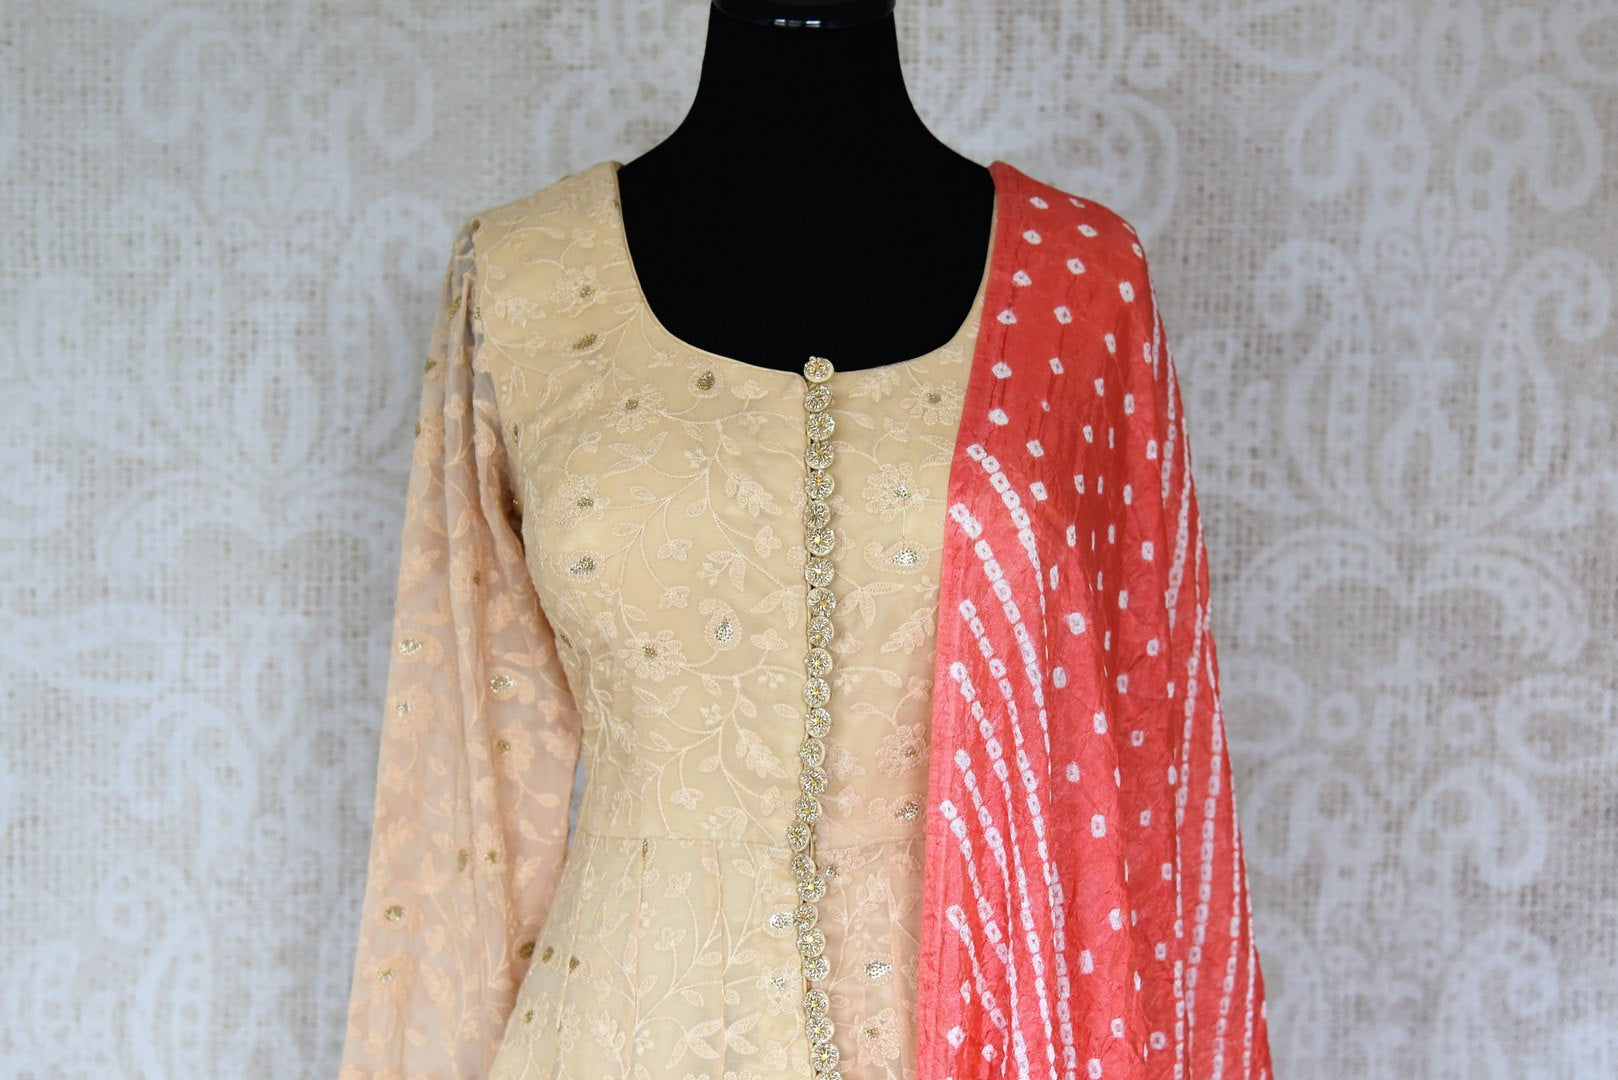 Buy beige embroidered georgette sharara online in USA with palazzo and dupatta from Pure Elegance. Add exquisite Indian designer suits, Indian dresses, wedding lehengas in beautiful styles and designs to your ethnic wardrobe from our Indian clothing store in USA or shop online.-front